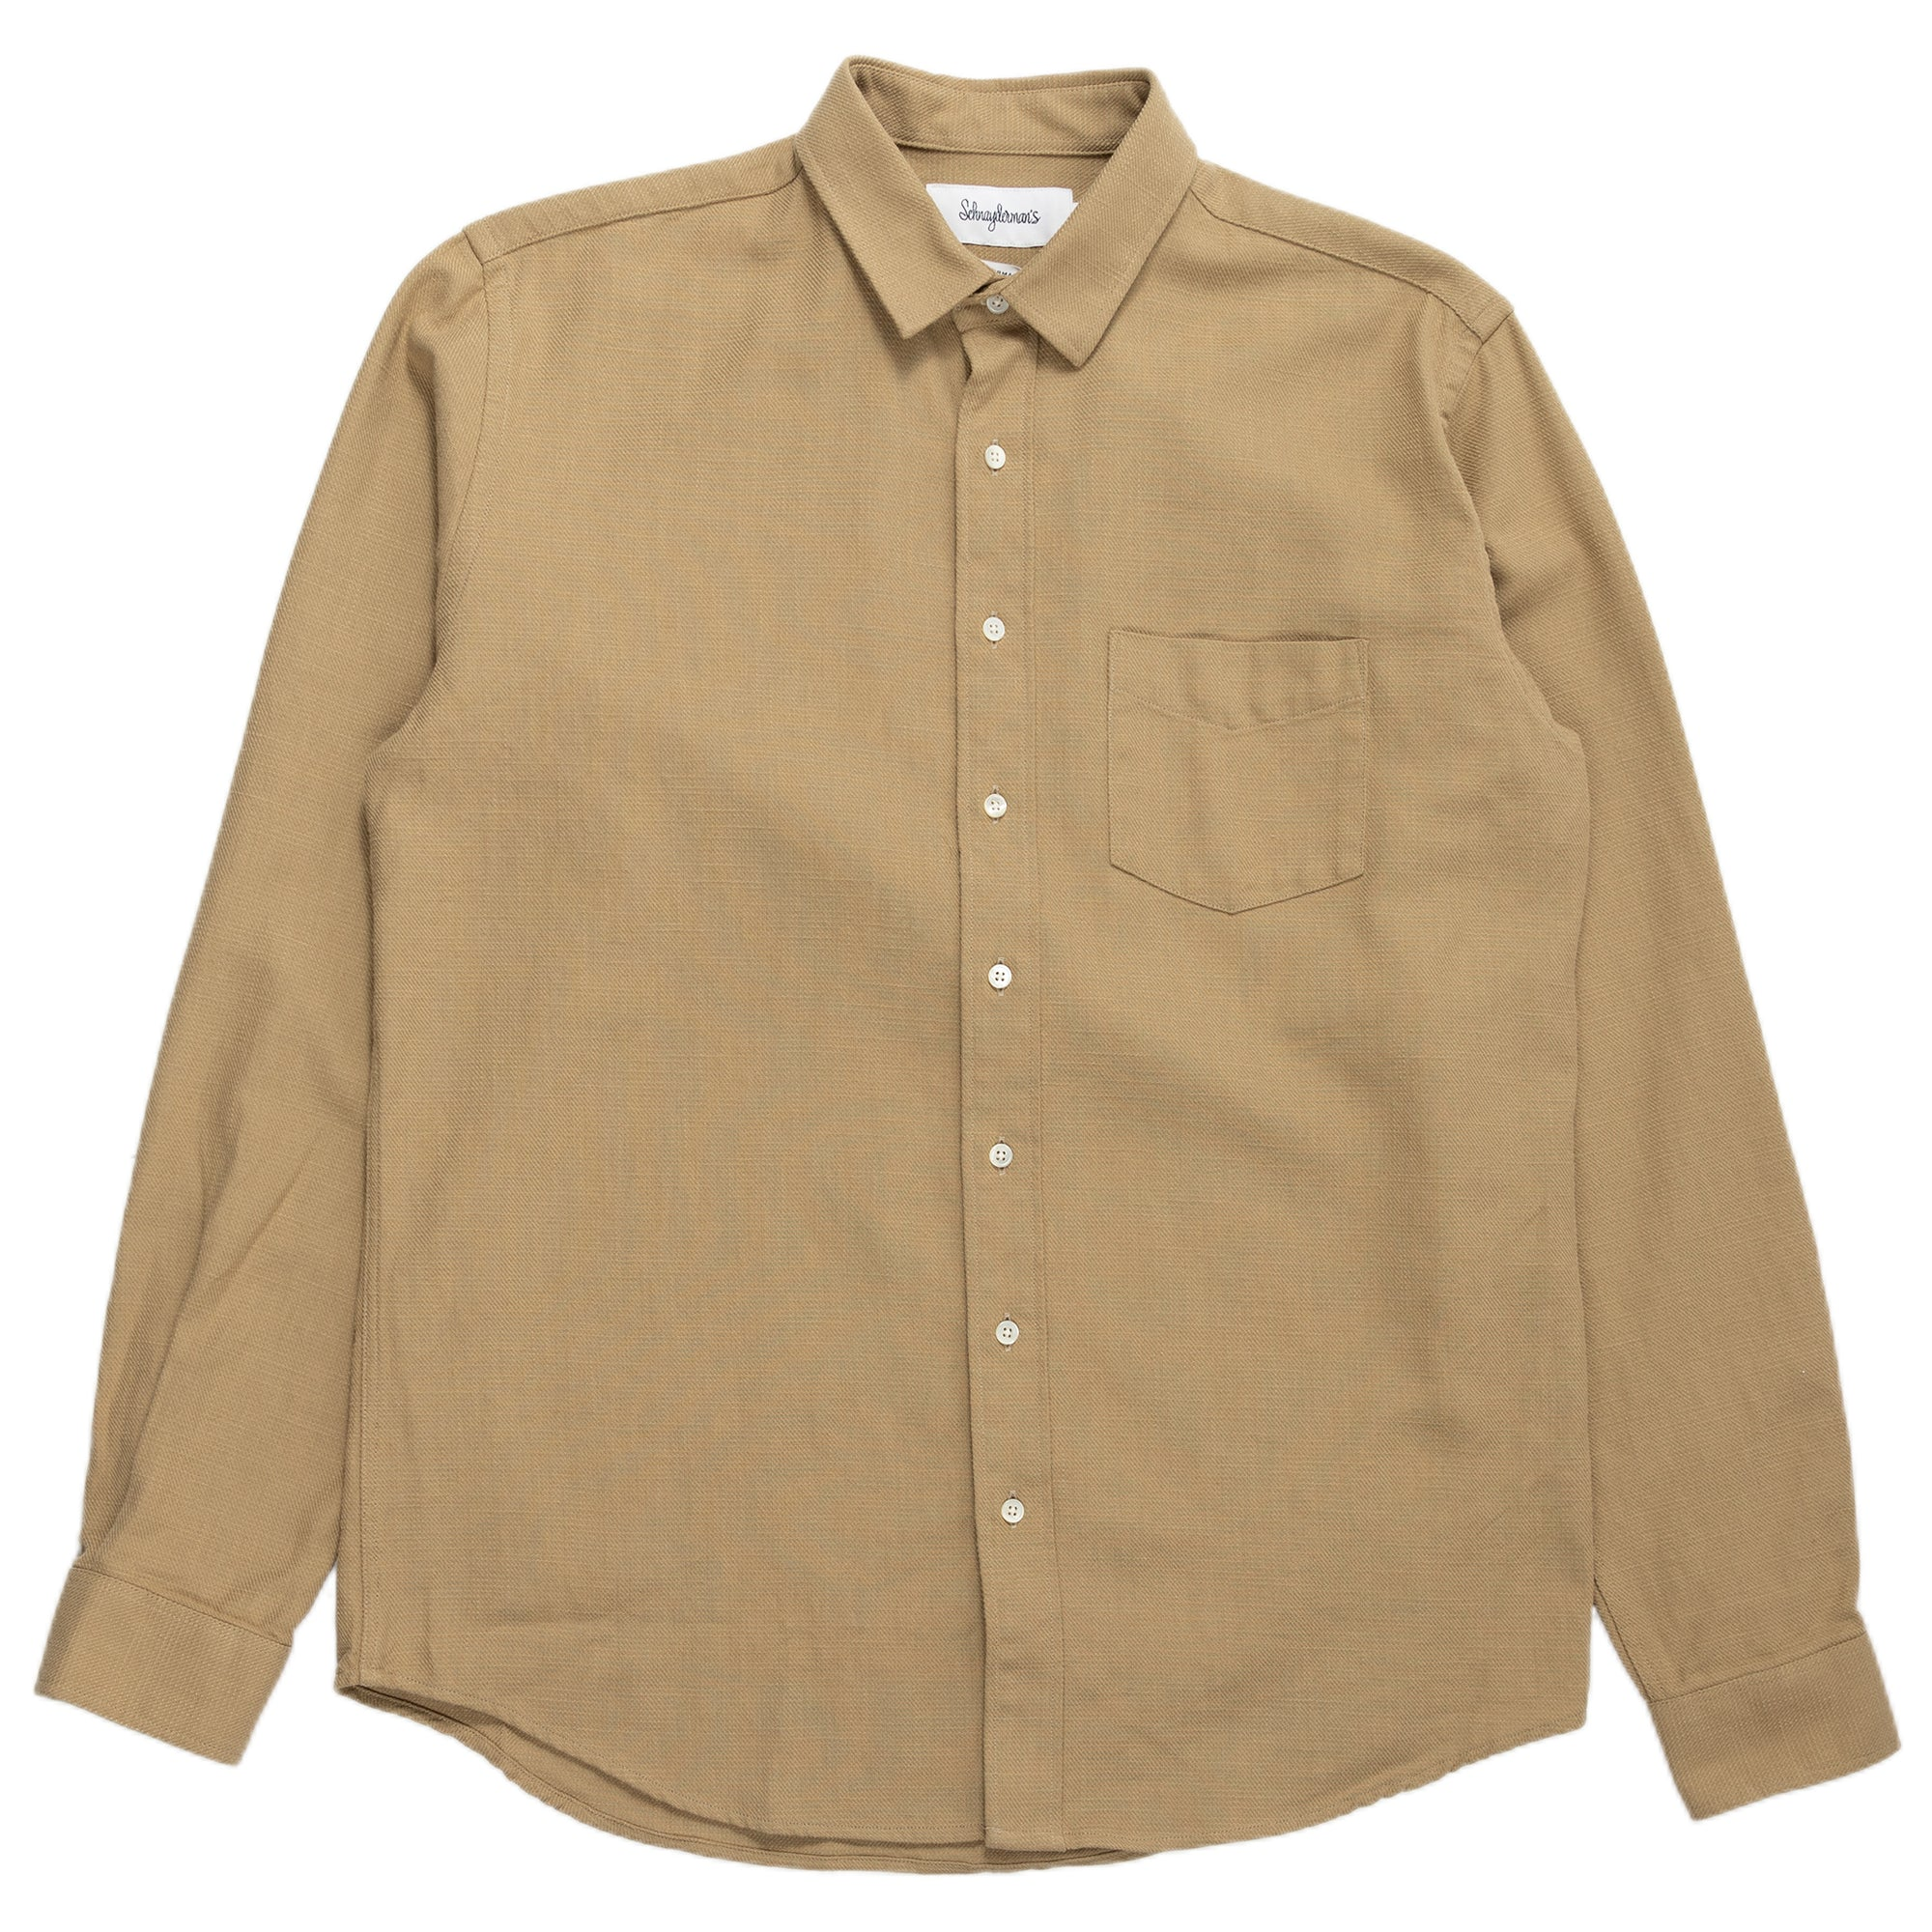 Schnaydermans Shirt Unbutton Broken Twill Army Beige Button Up Front